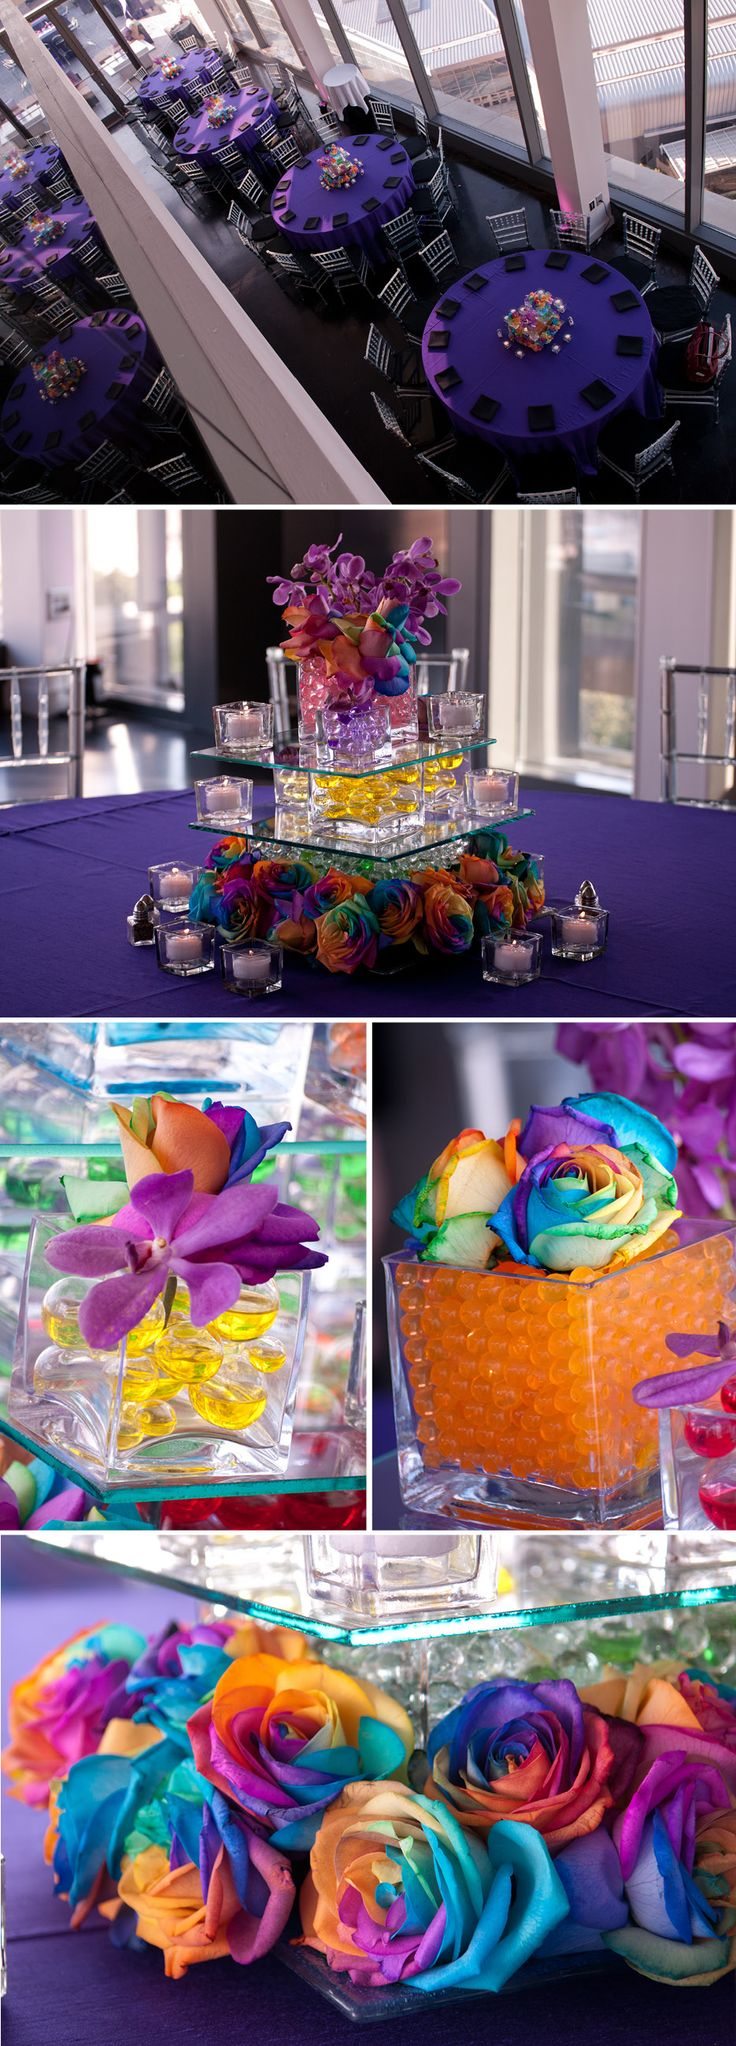 cool tables and center pieces, definitely different colors